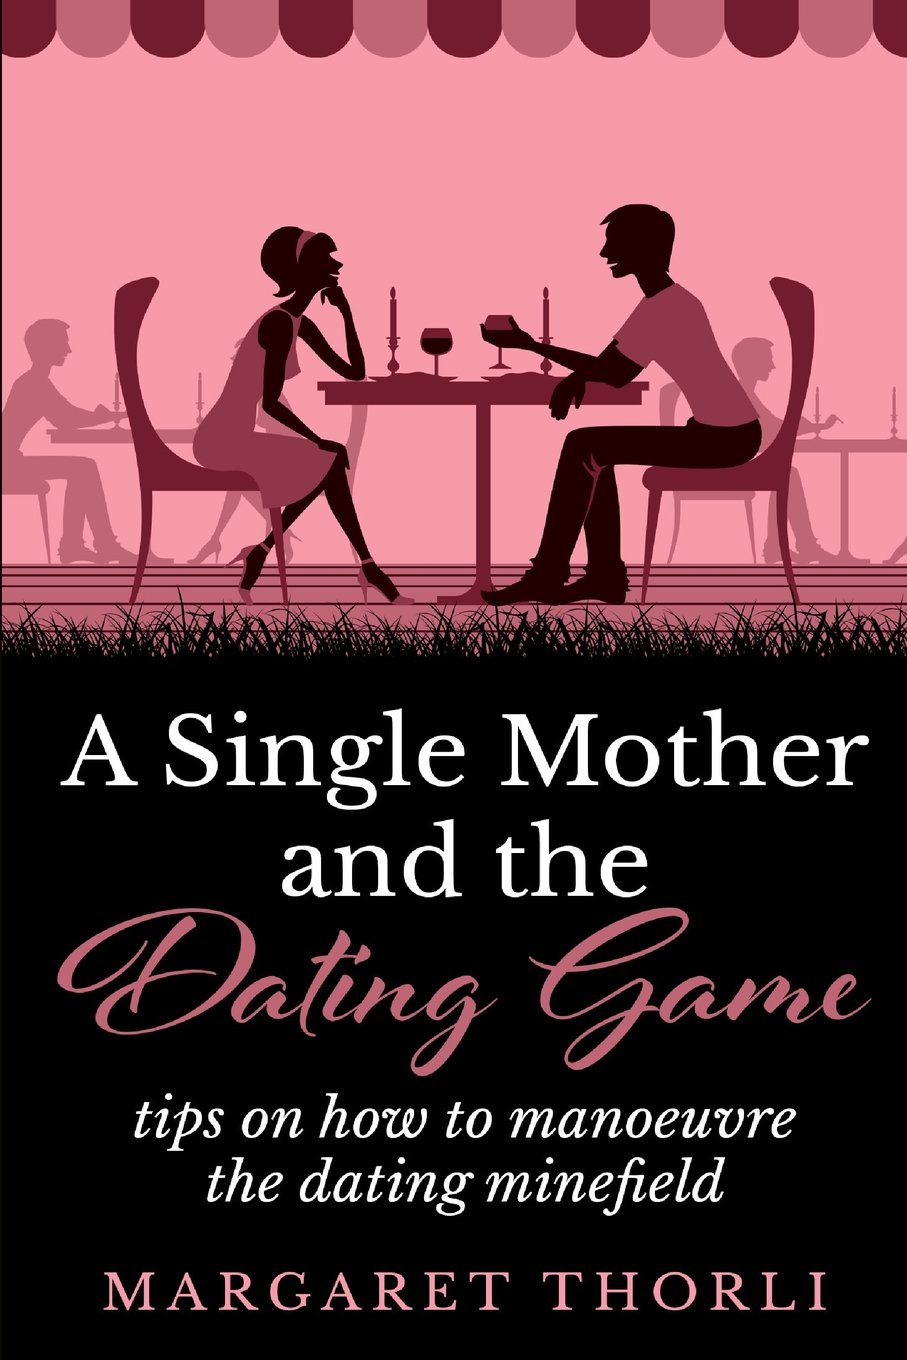 tips for dating single mothers